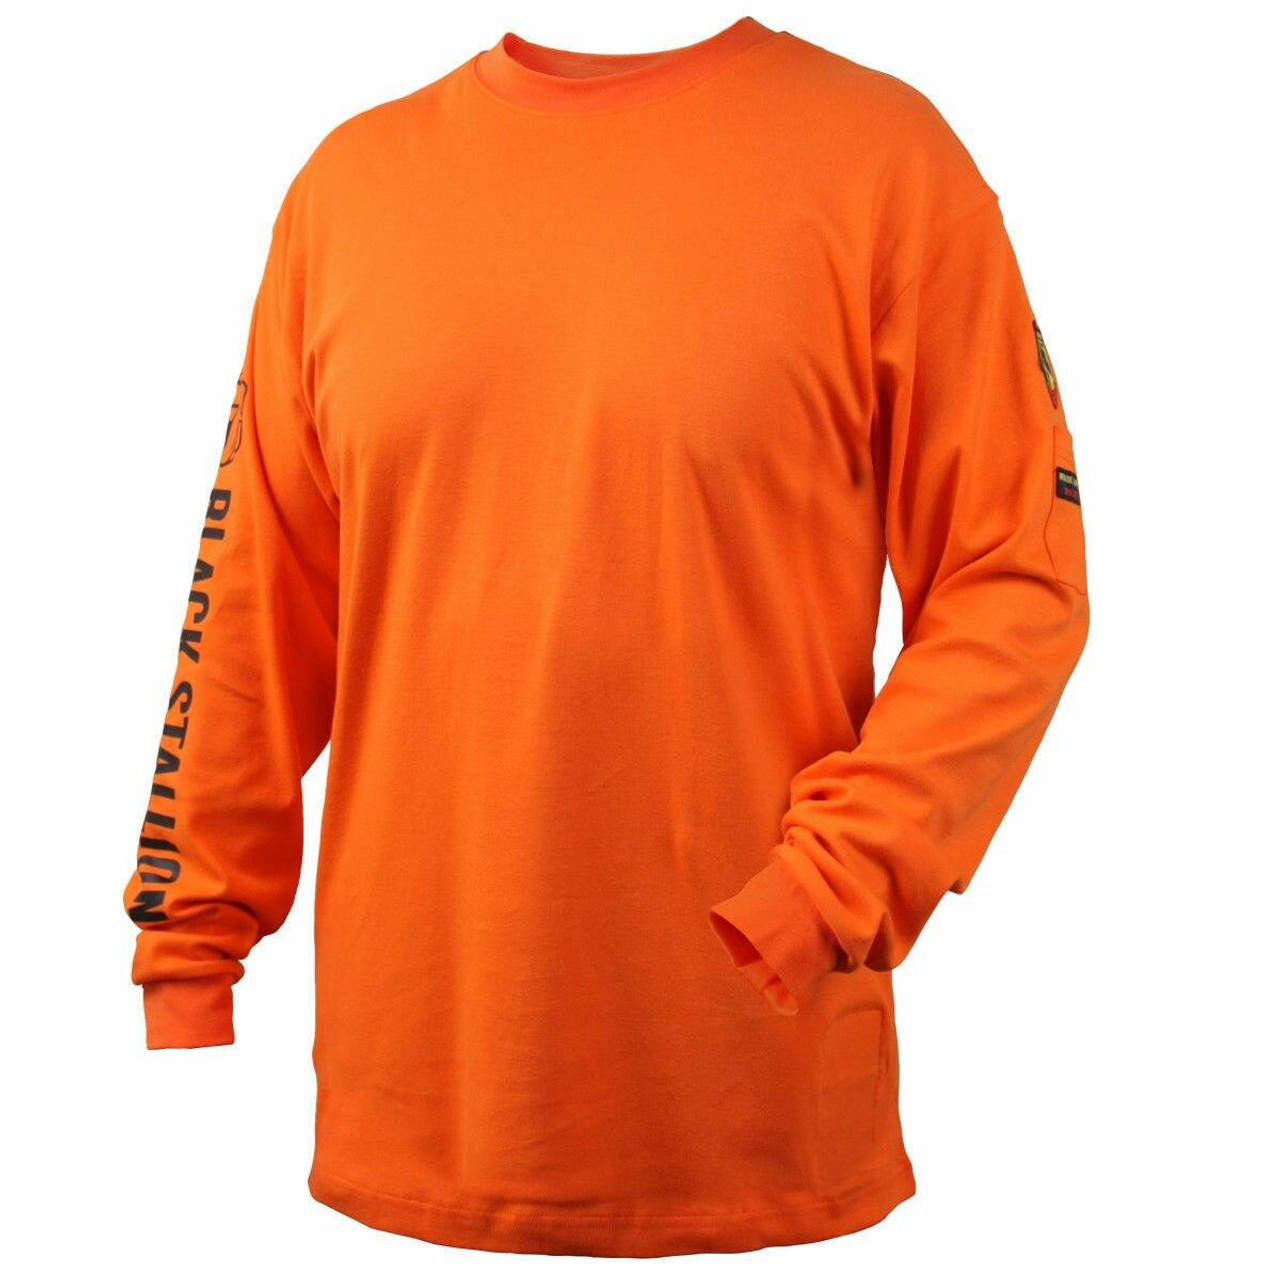 Revco Black Stallion Orange 7 oz FR Cotton Knit Long-Sleeve T-Shirt